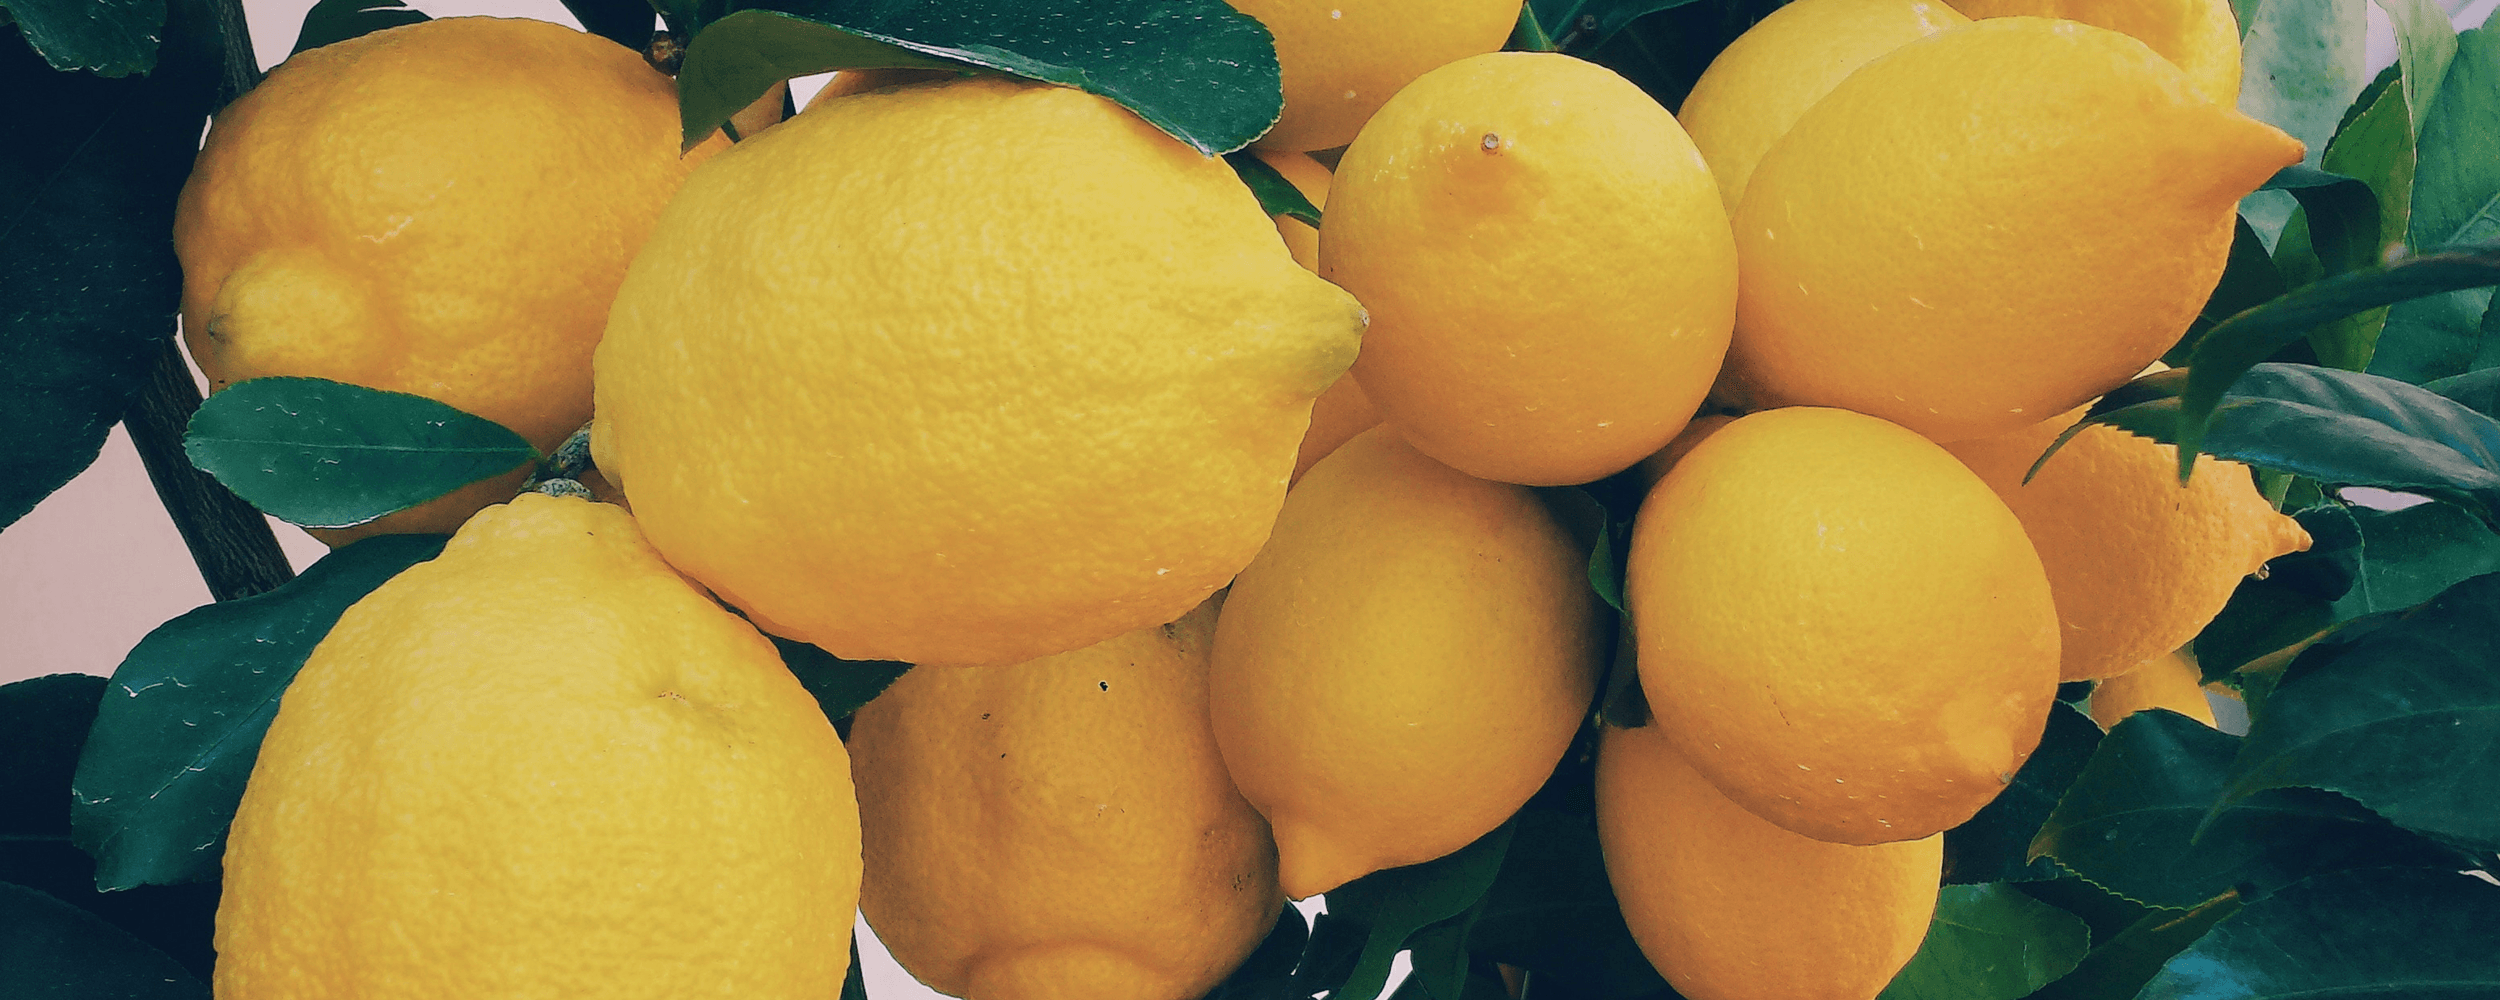 Marketing lemons: Your guide to sweet marketing lemonade